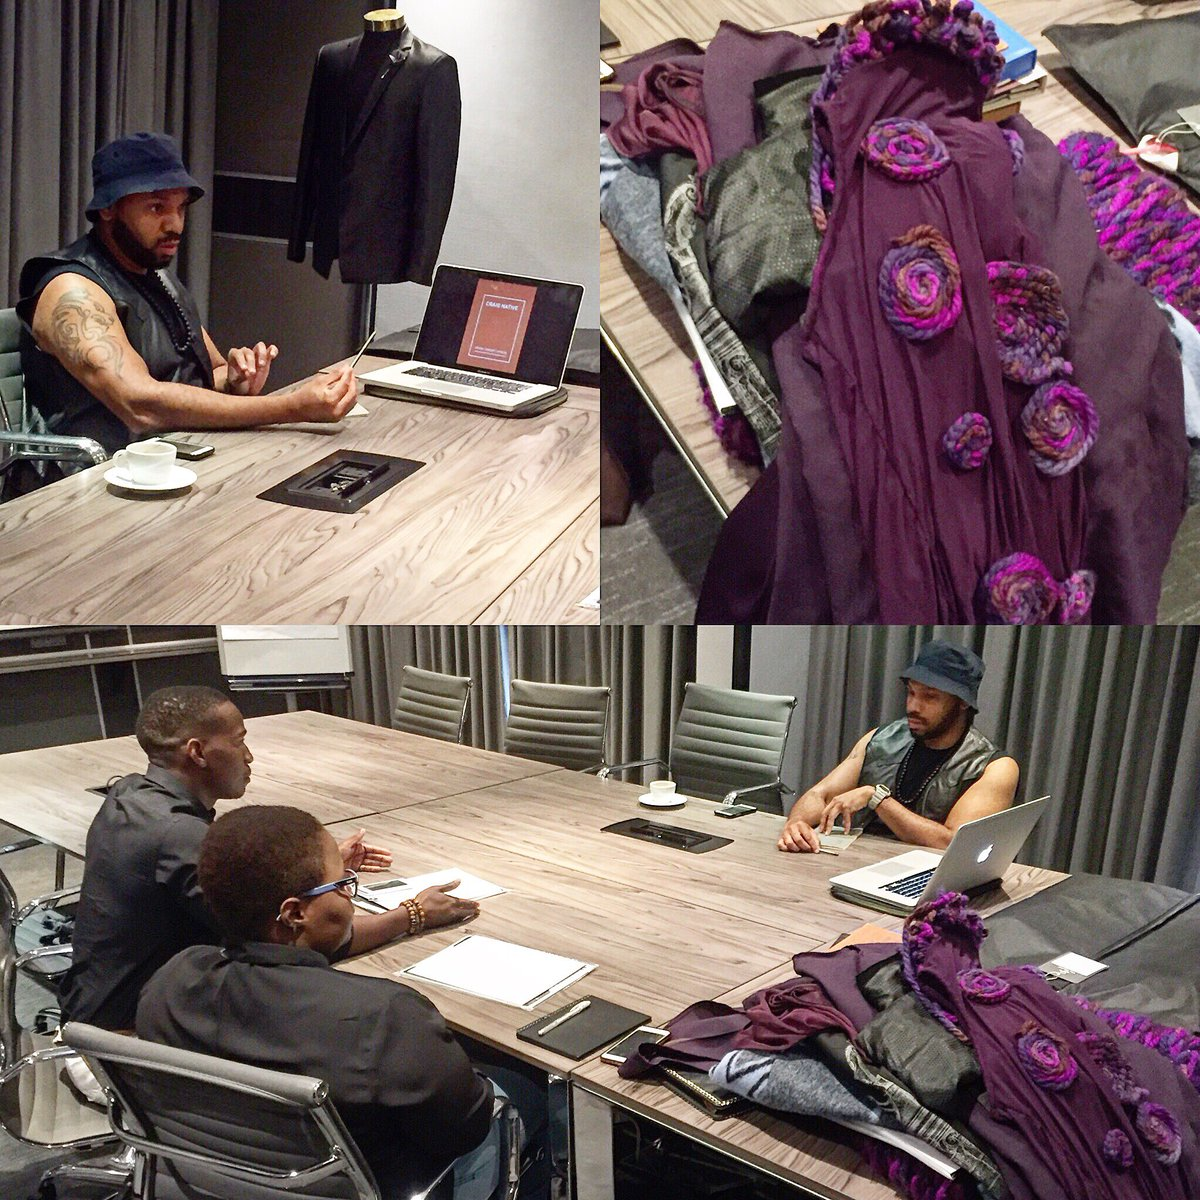 International fashion designer @craignative000 talking fashion with the @oudemeesterSA #ivejustbegun participants. https://t.co/Xu96DGXLPI